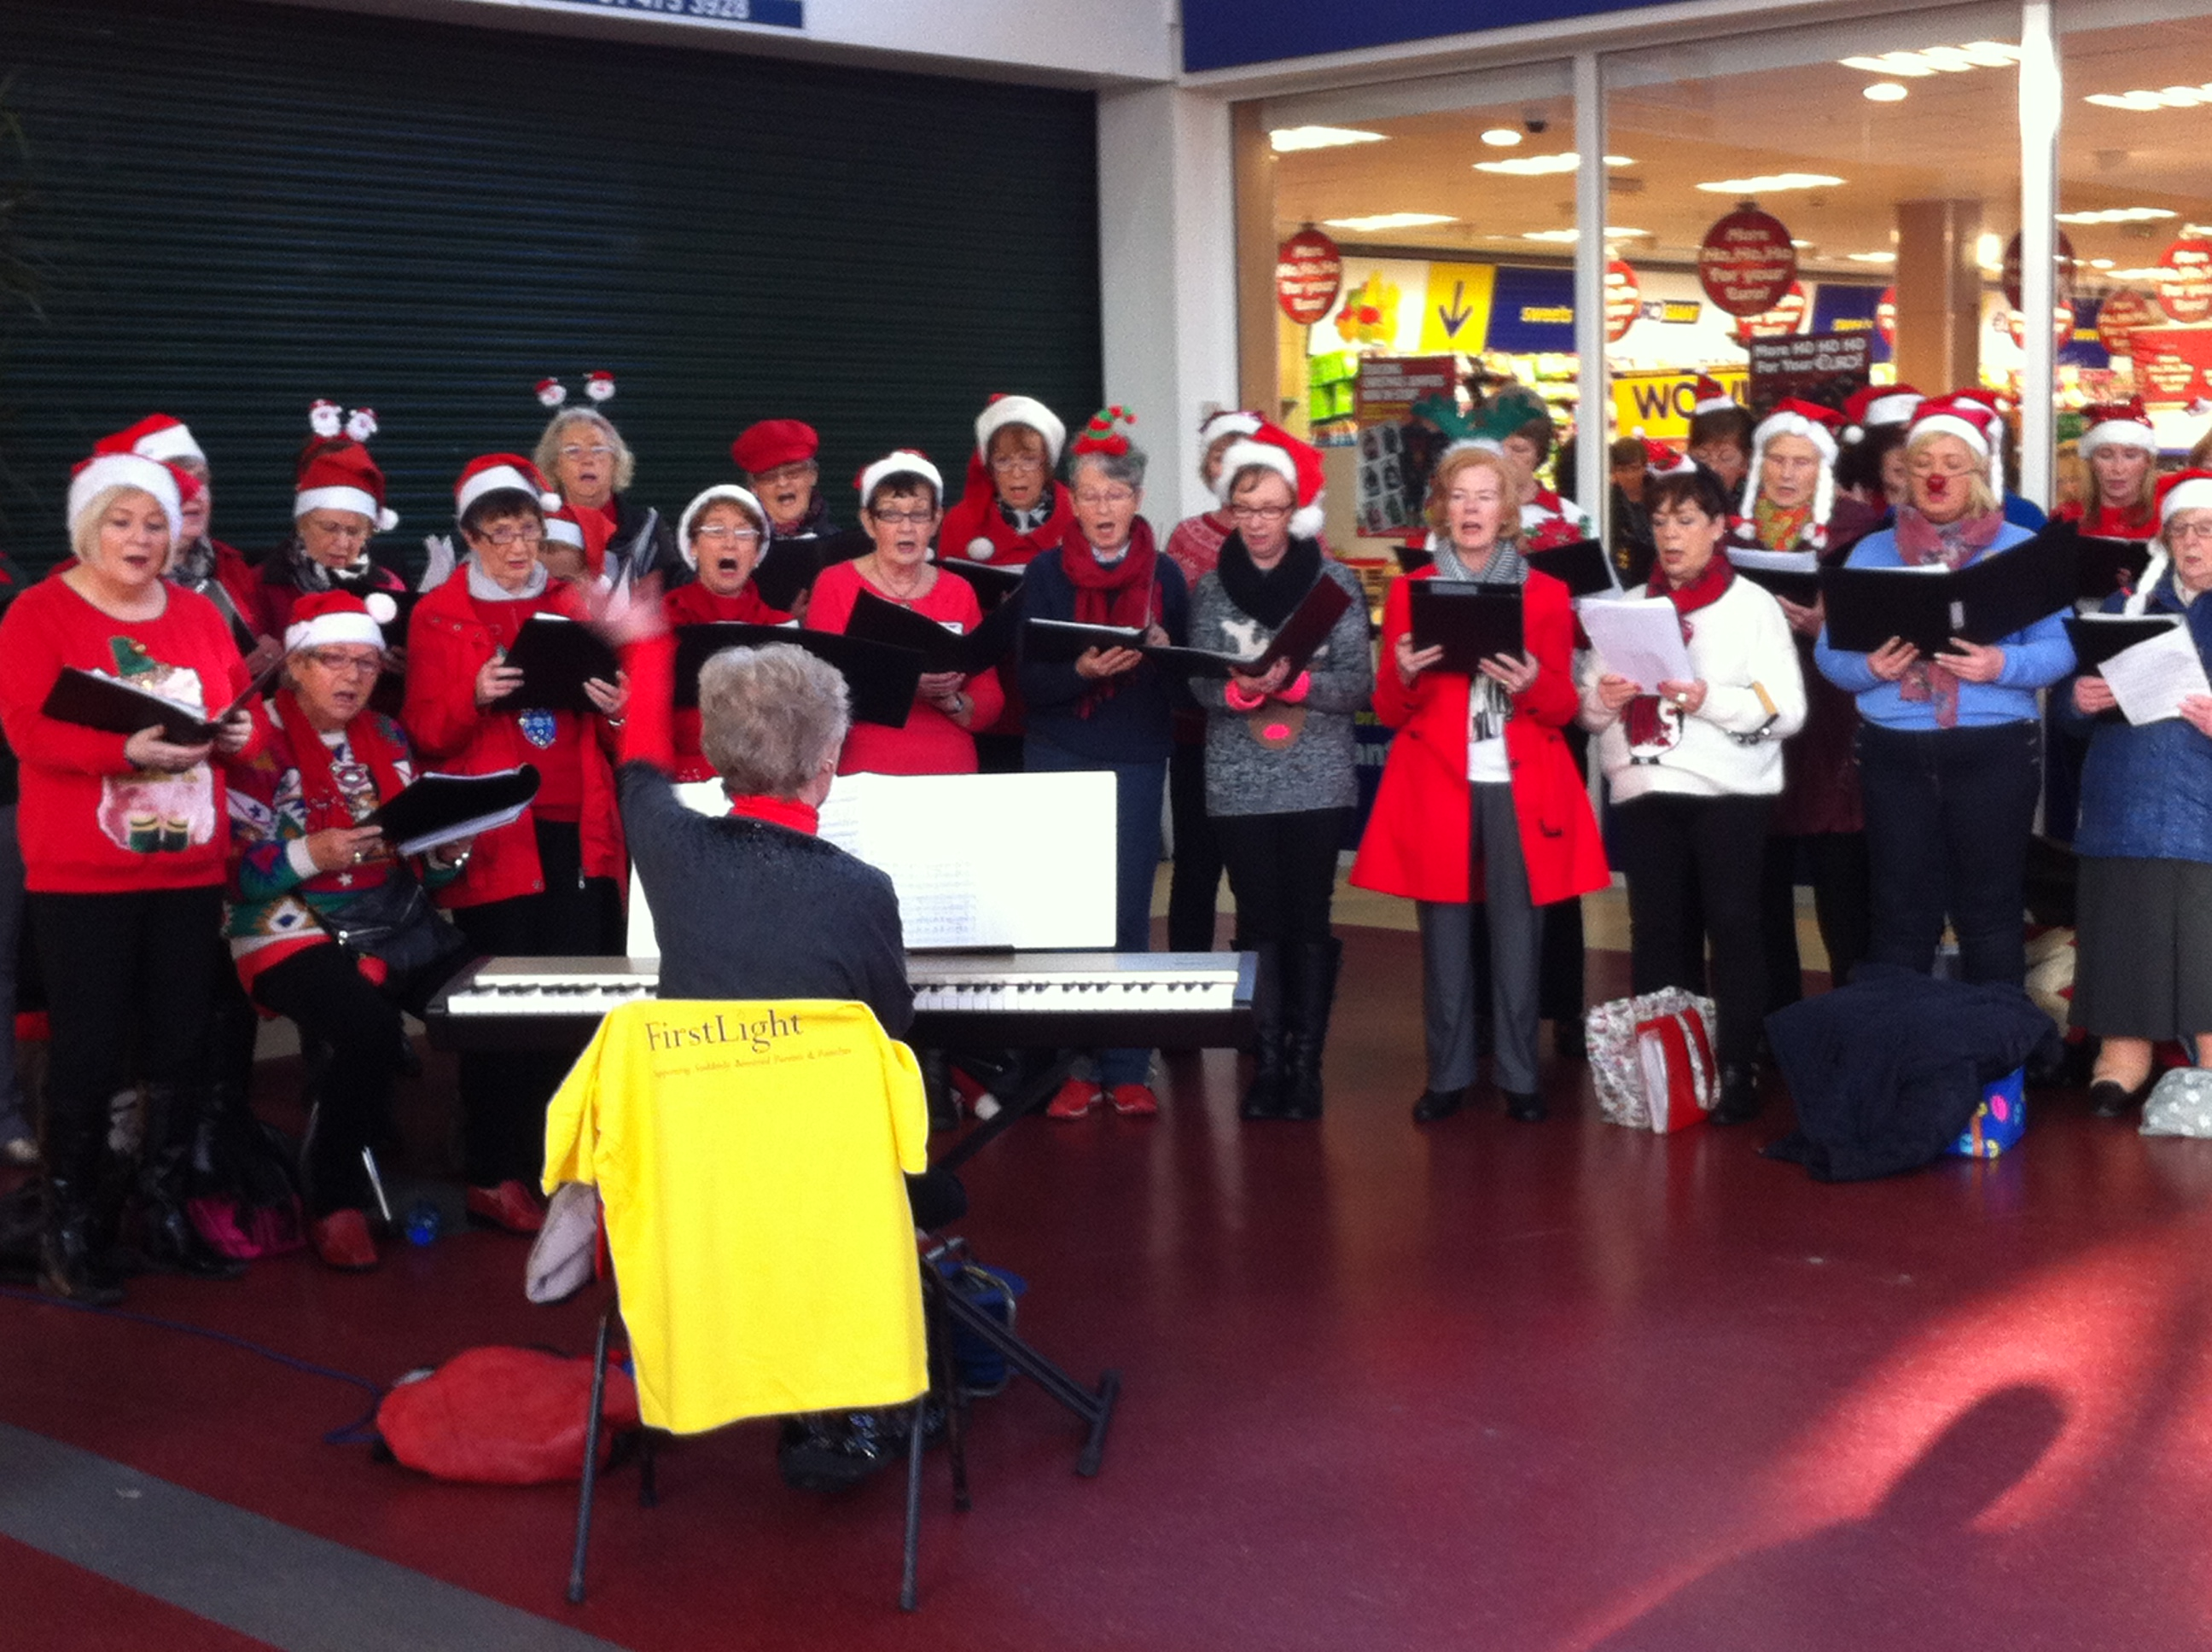 Choir members carol singing for First Light in December 2014 (2)